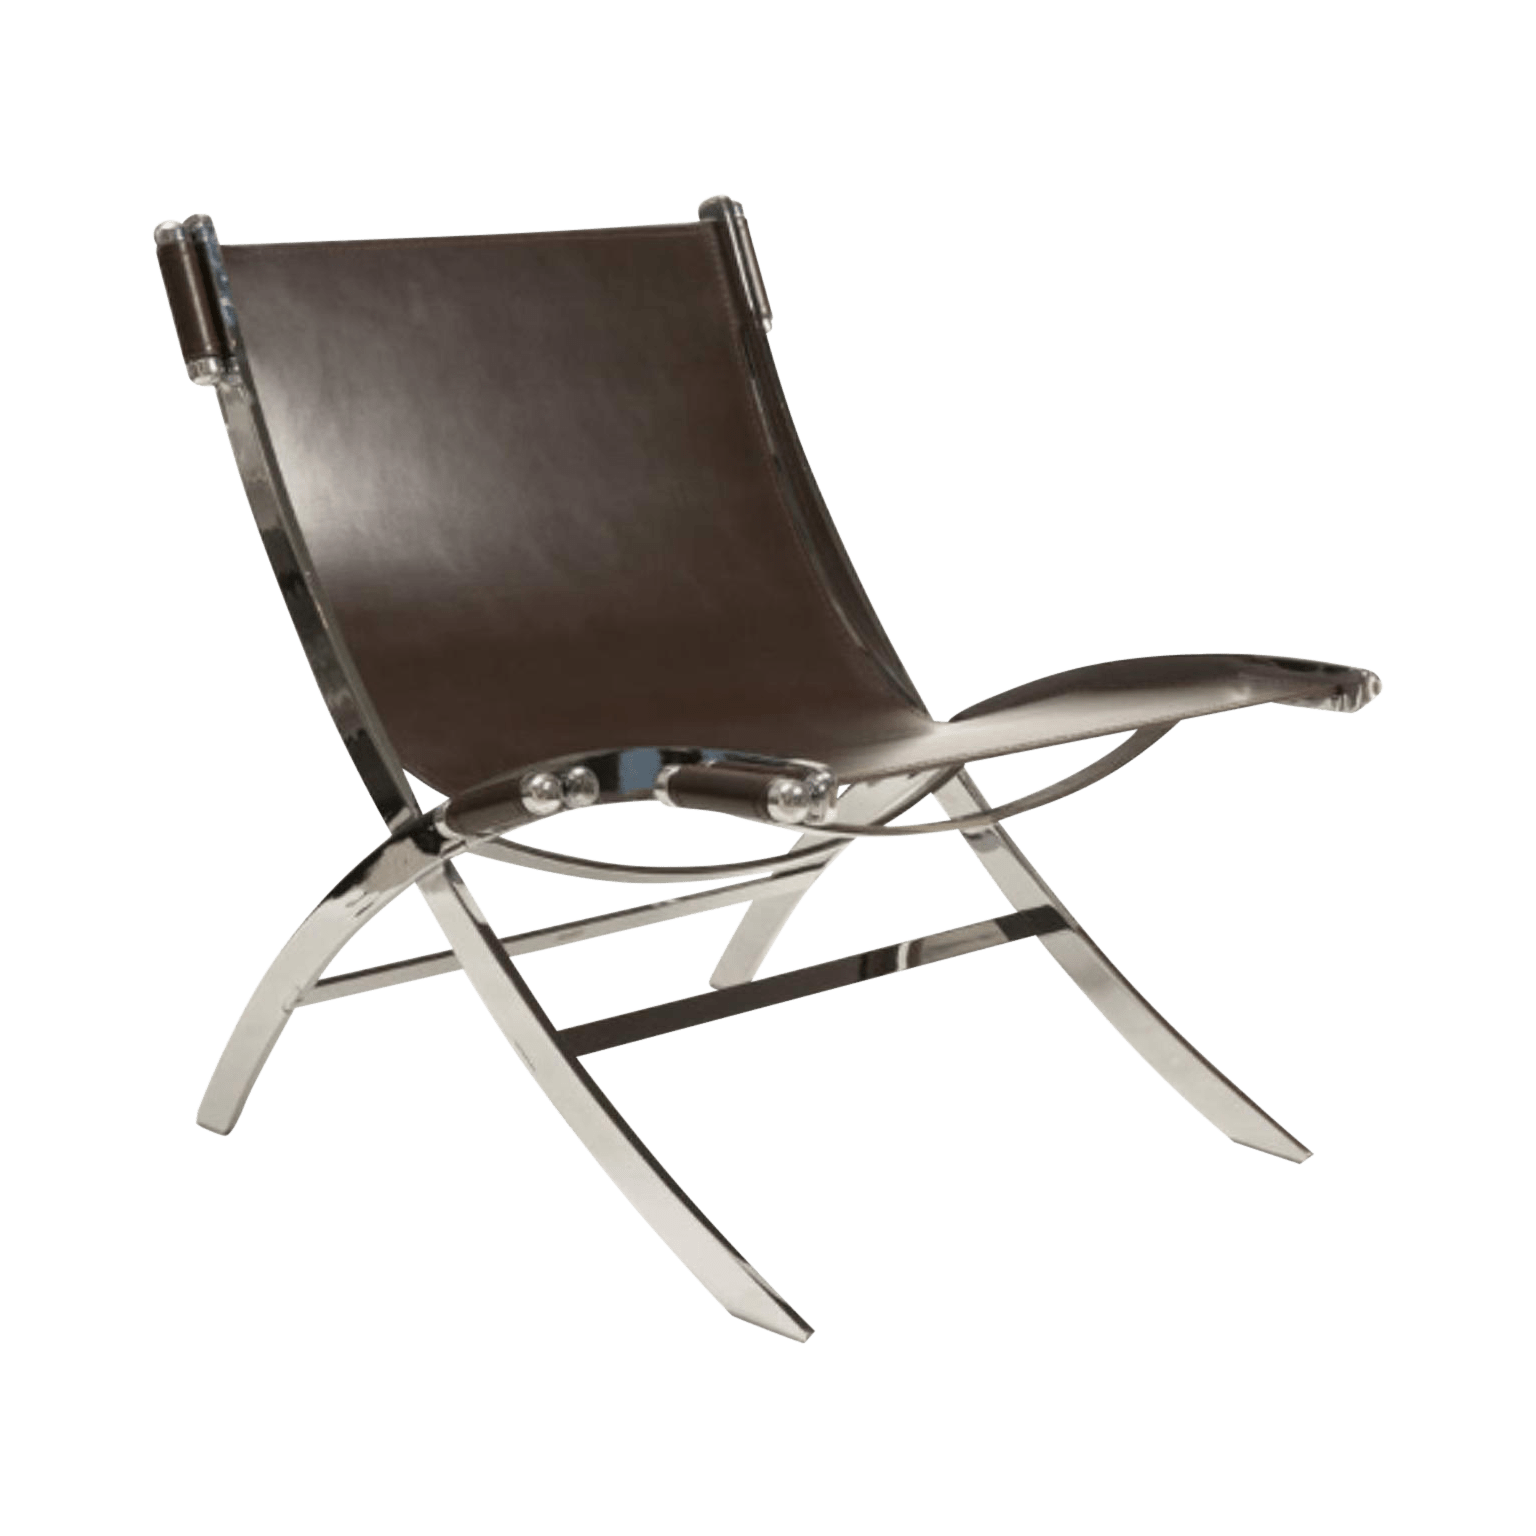 leather and chrome chairs vintage school desk chair sling paul tuttle chairish